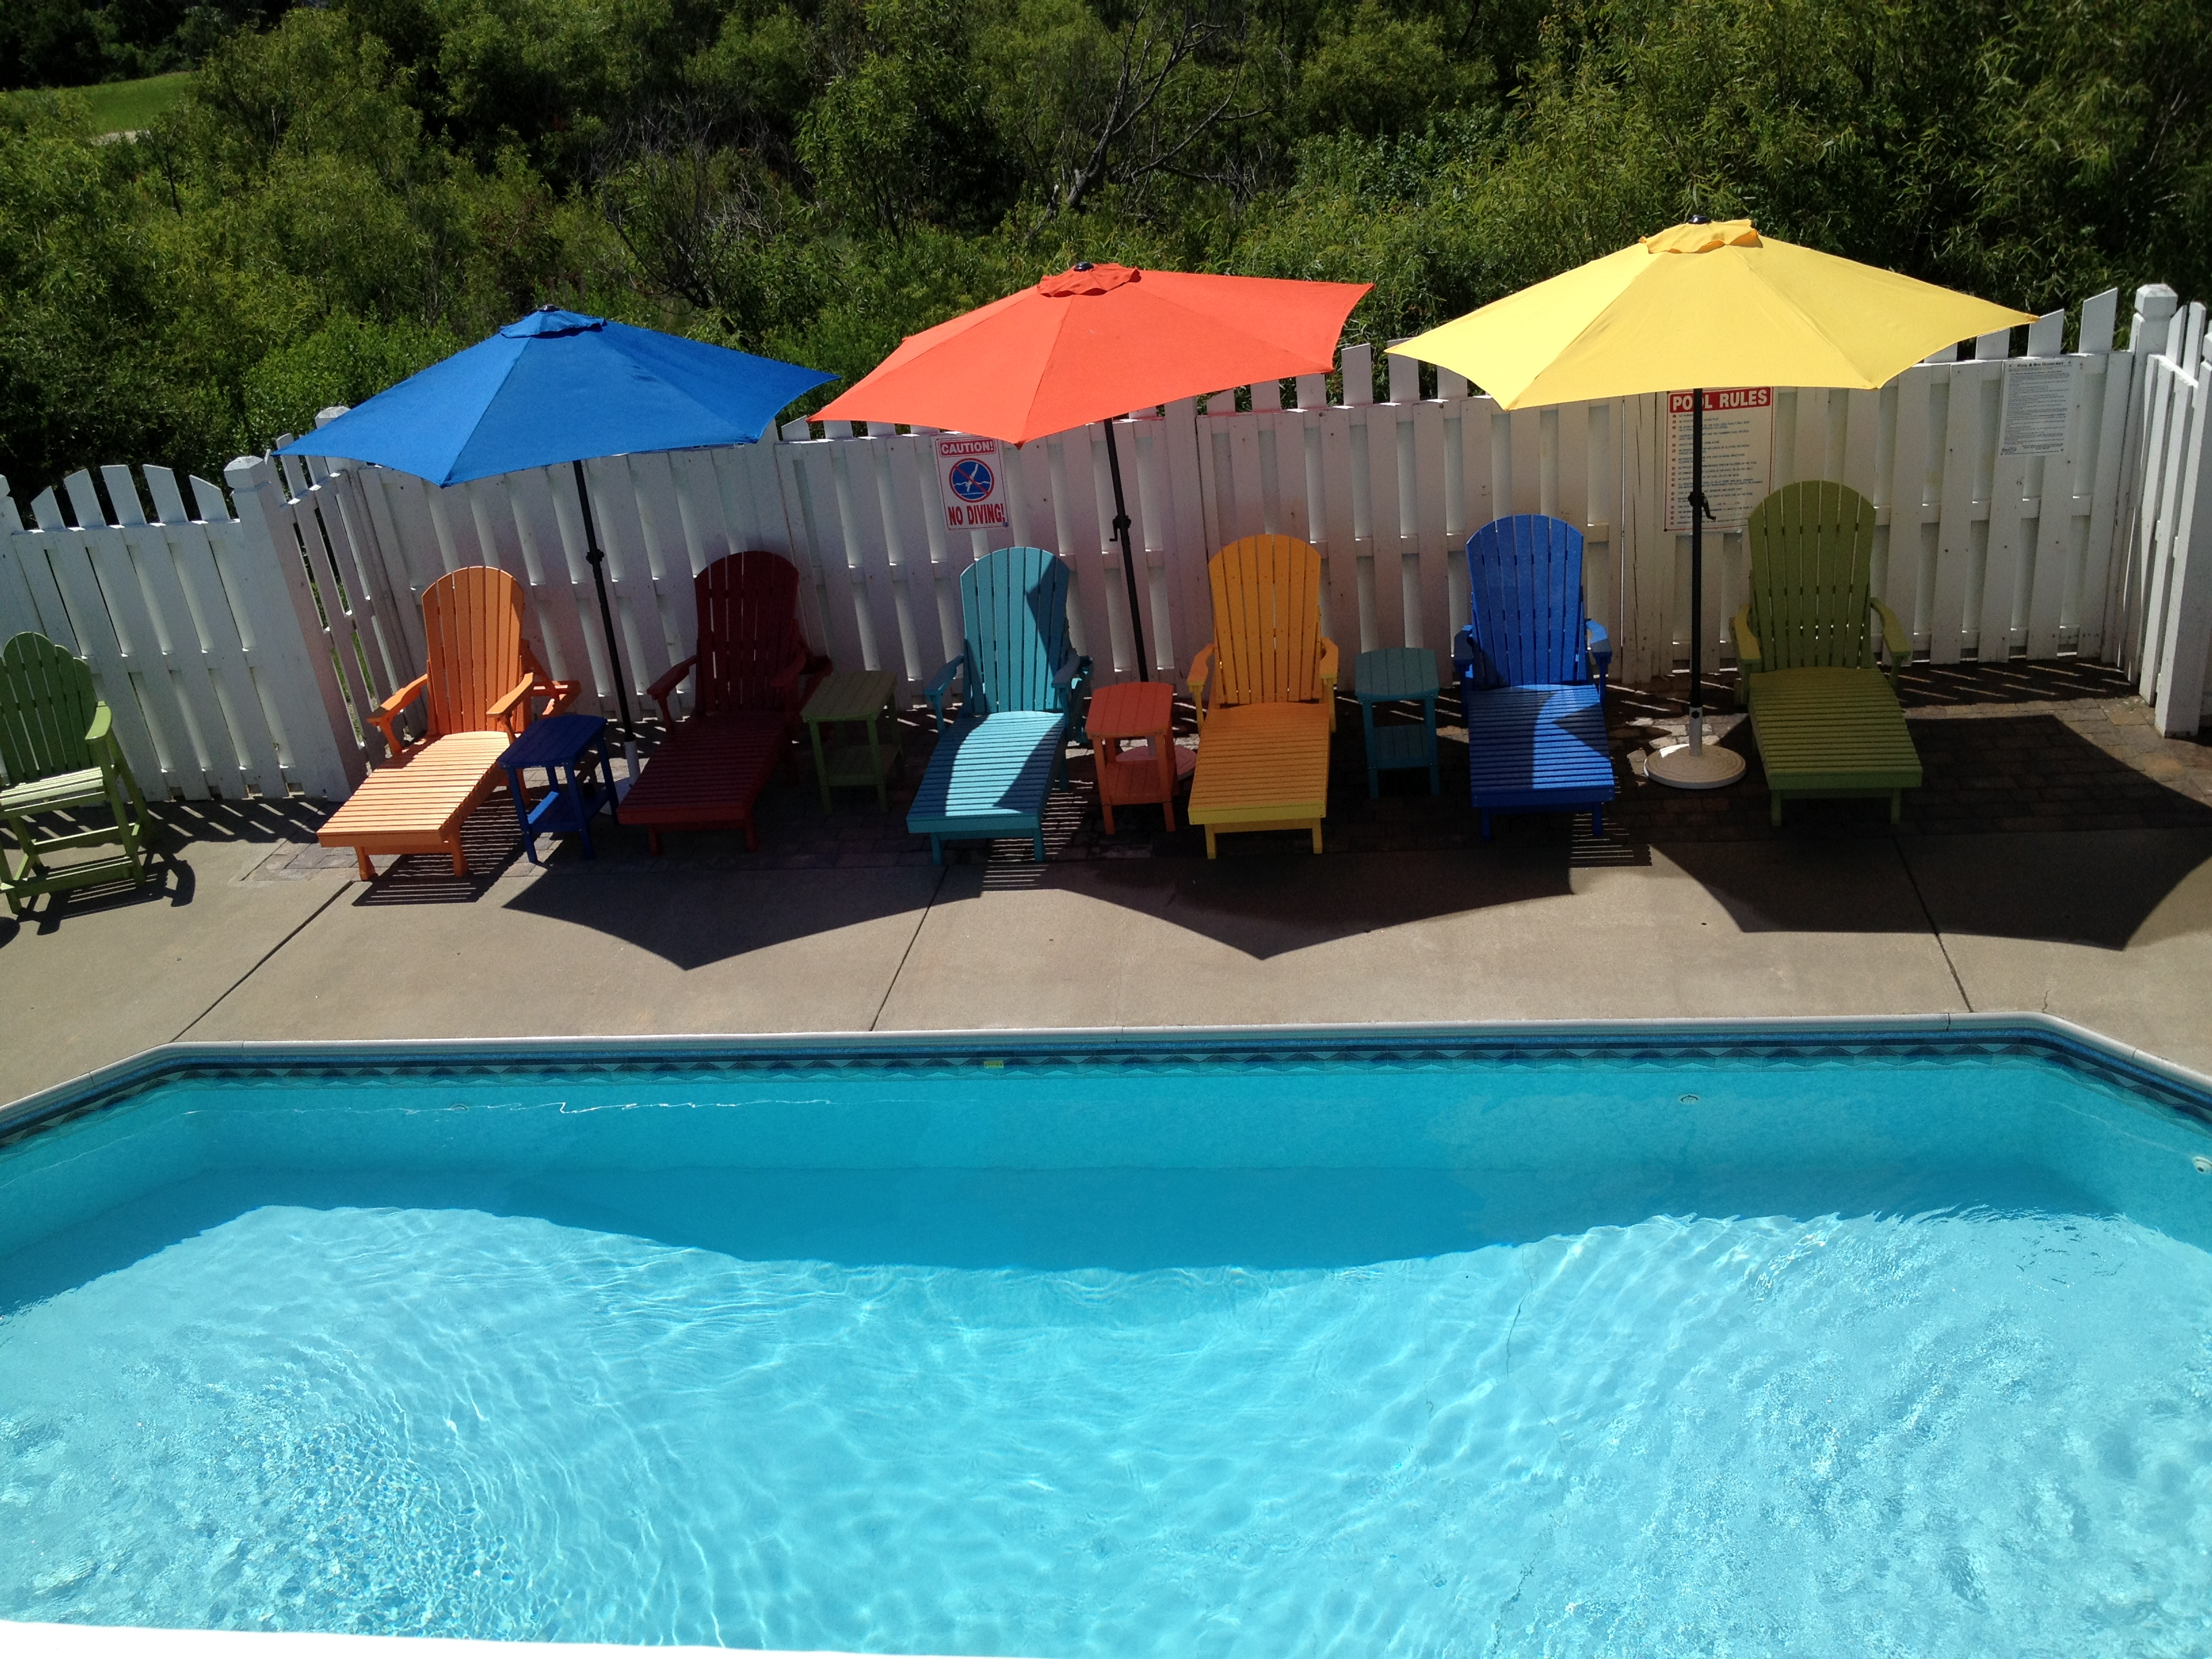 This is what your pool could look like after a visit from your local OBX pool cleaner!